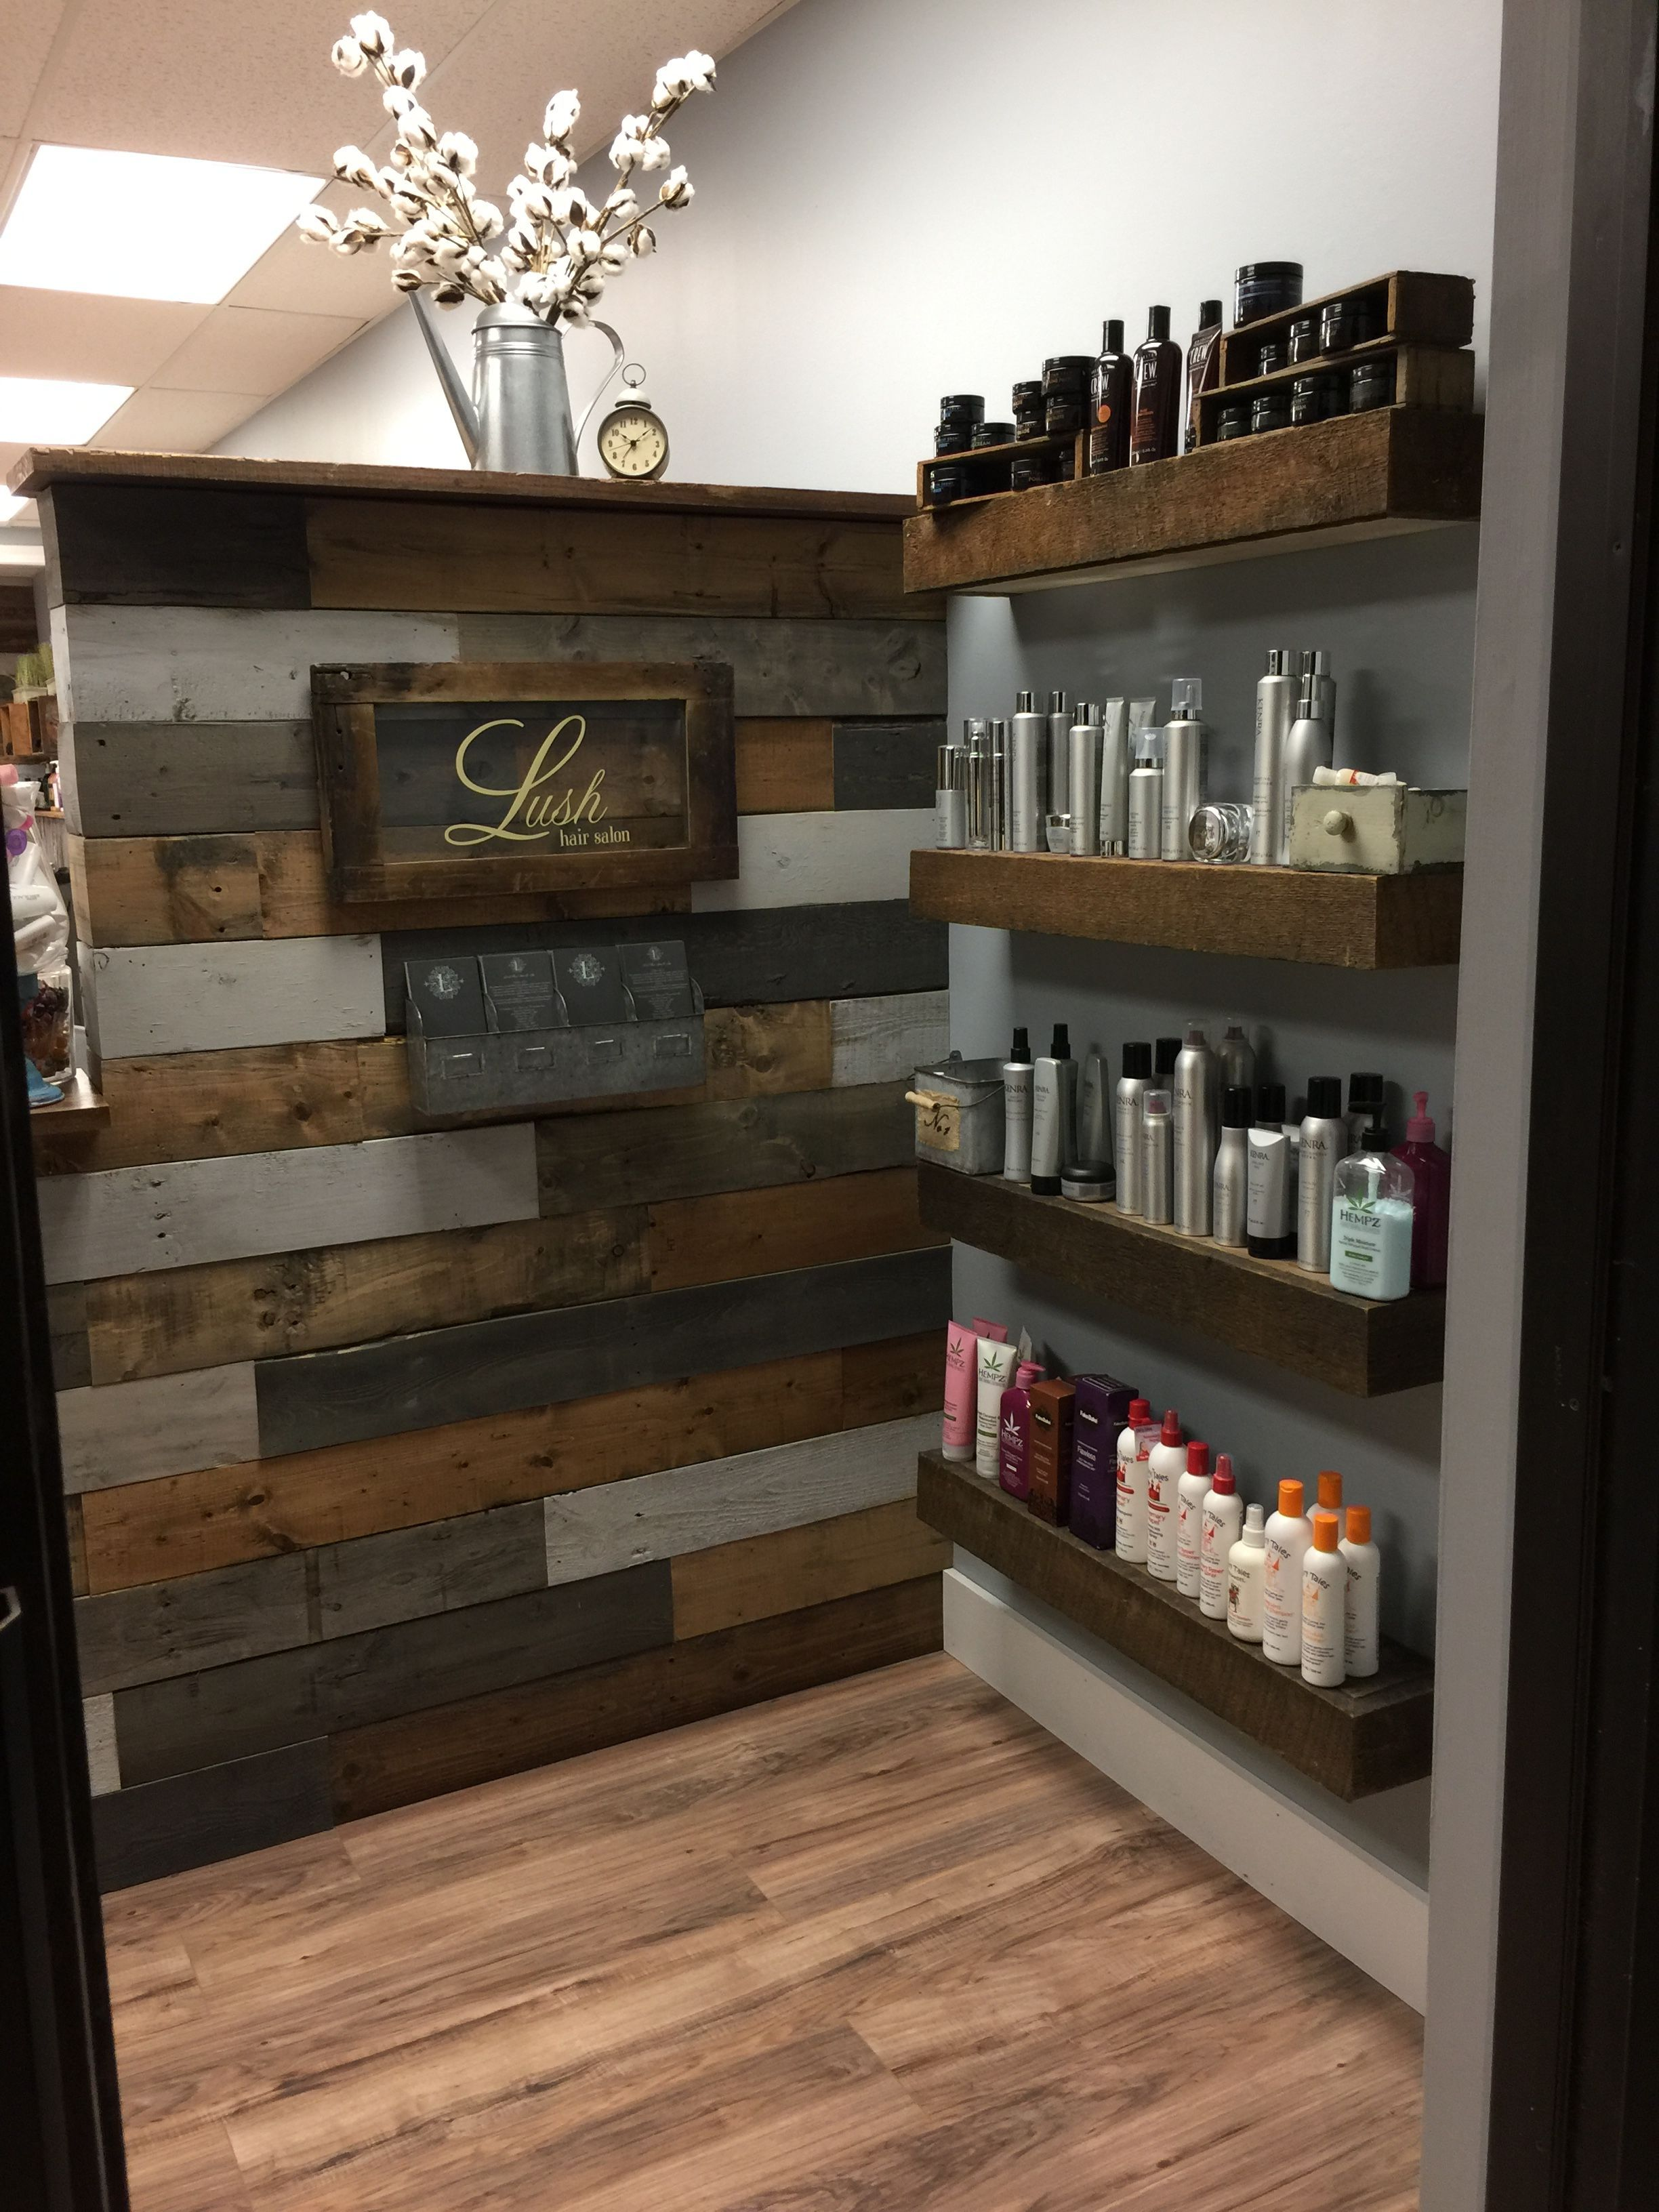 The best of wood pallets projects on one board: easy DIY ideas